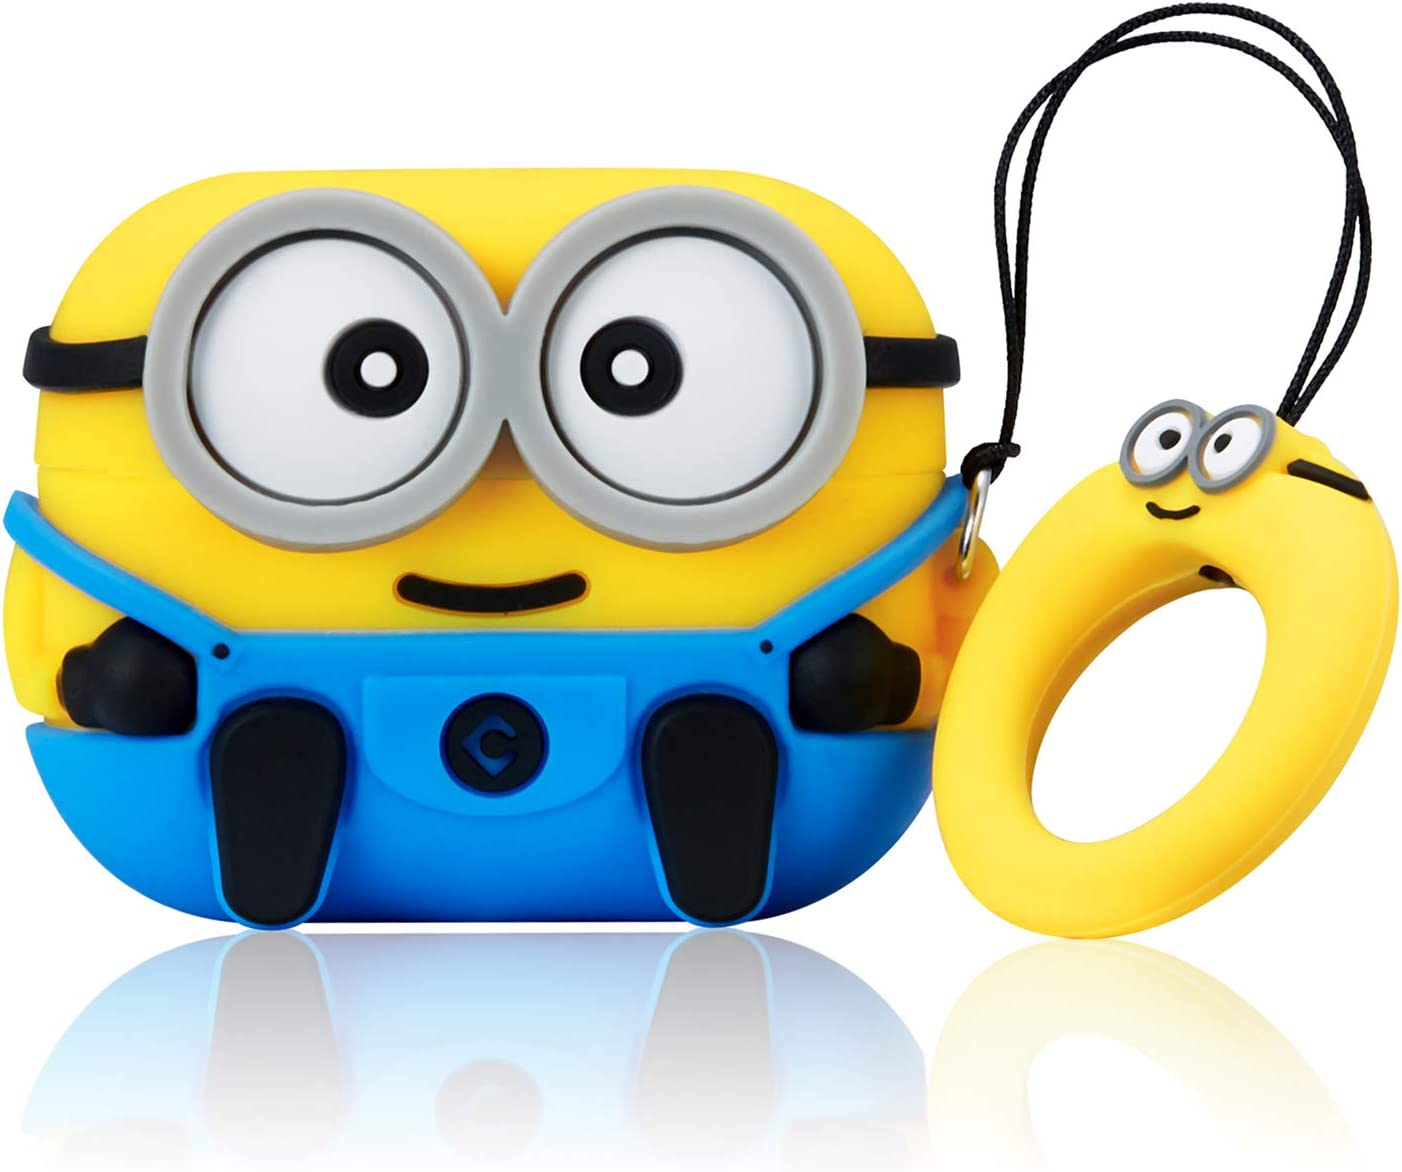 Coralogo Case for Airpods Pro/3 Cute, 3D Animal Minion Fashion Character Soft Silicone Cartoon Airpod Skin Funny Fun Cool Keychain Design Kids Teens Girls Boys Cover Cases Air pods 3 (Blue Two Eye)